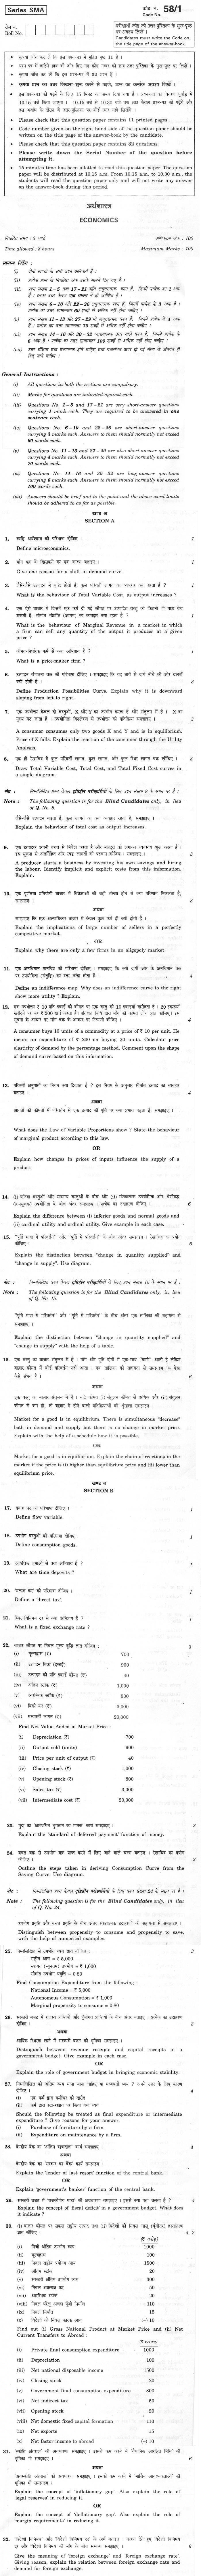 CBSE Class XII Previous Year Question Paper 2012 Economics